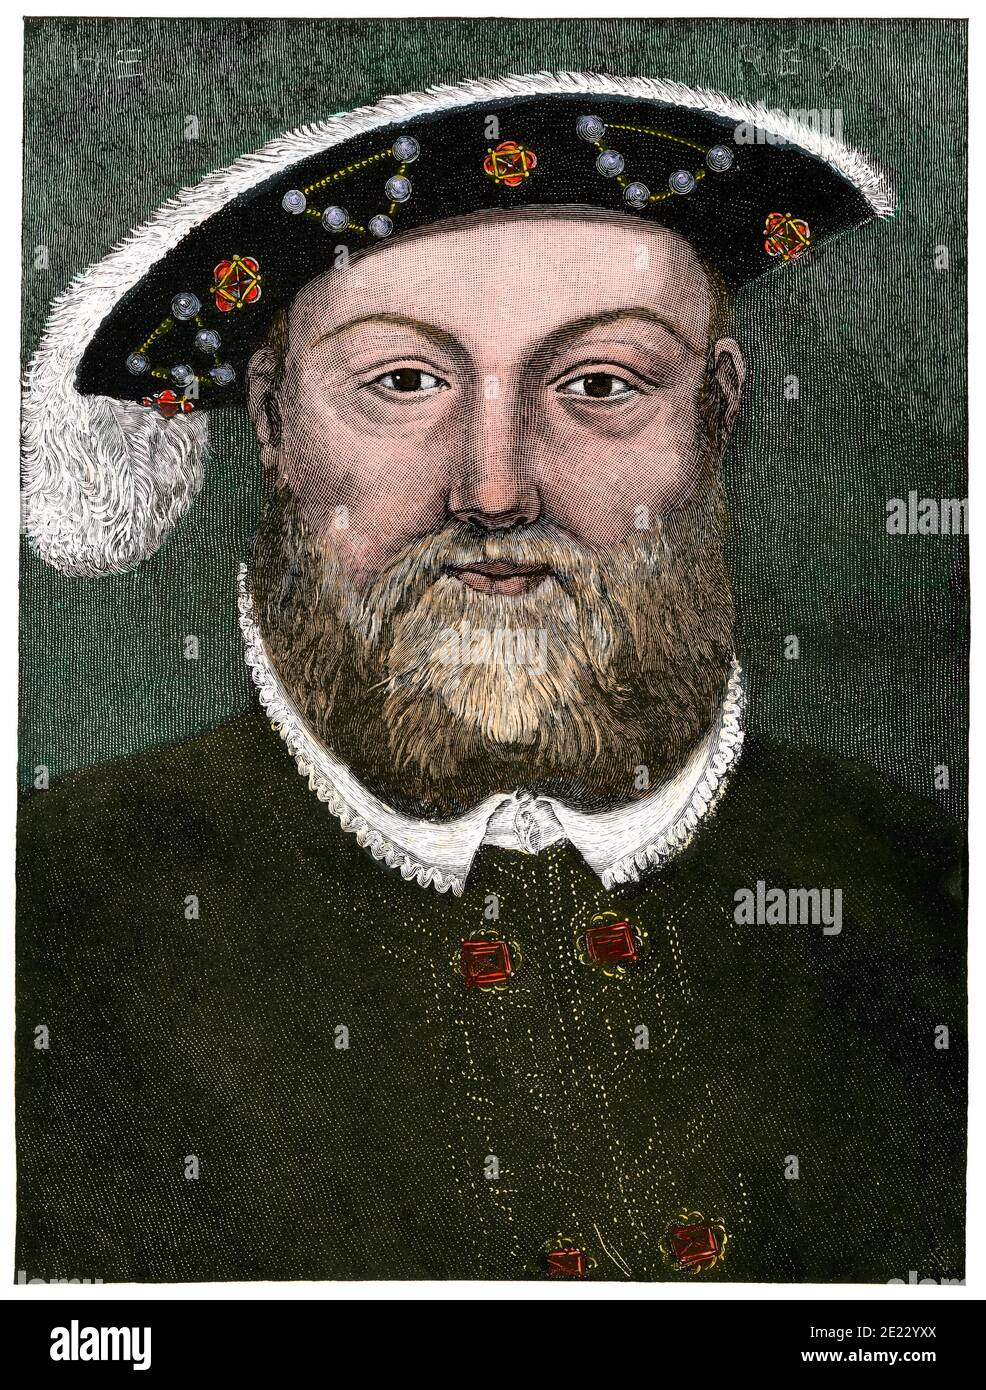 Henry VIII, King of England. Hand-colored woodcut Stock Photo